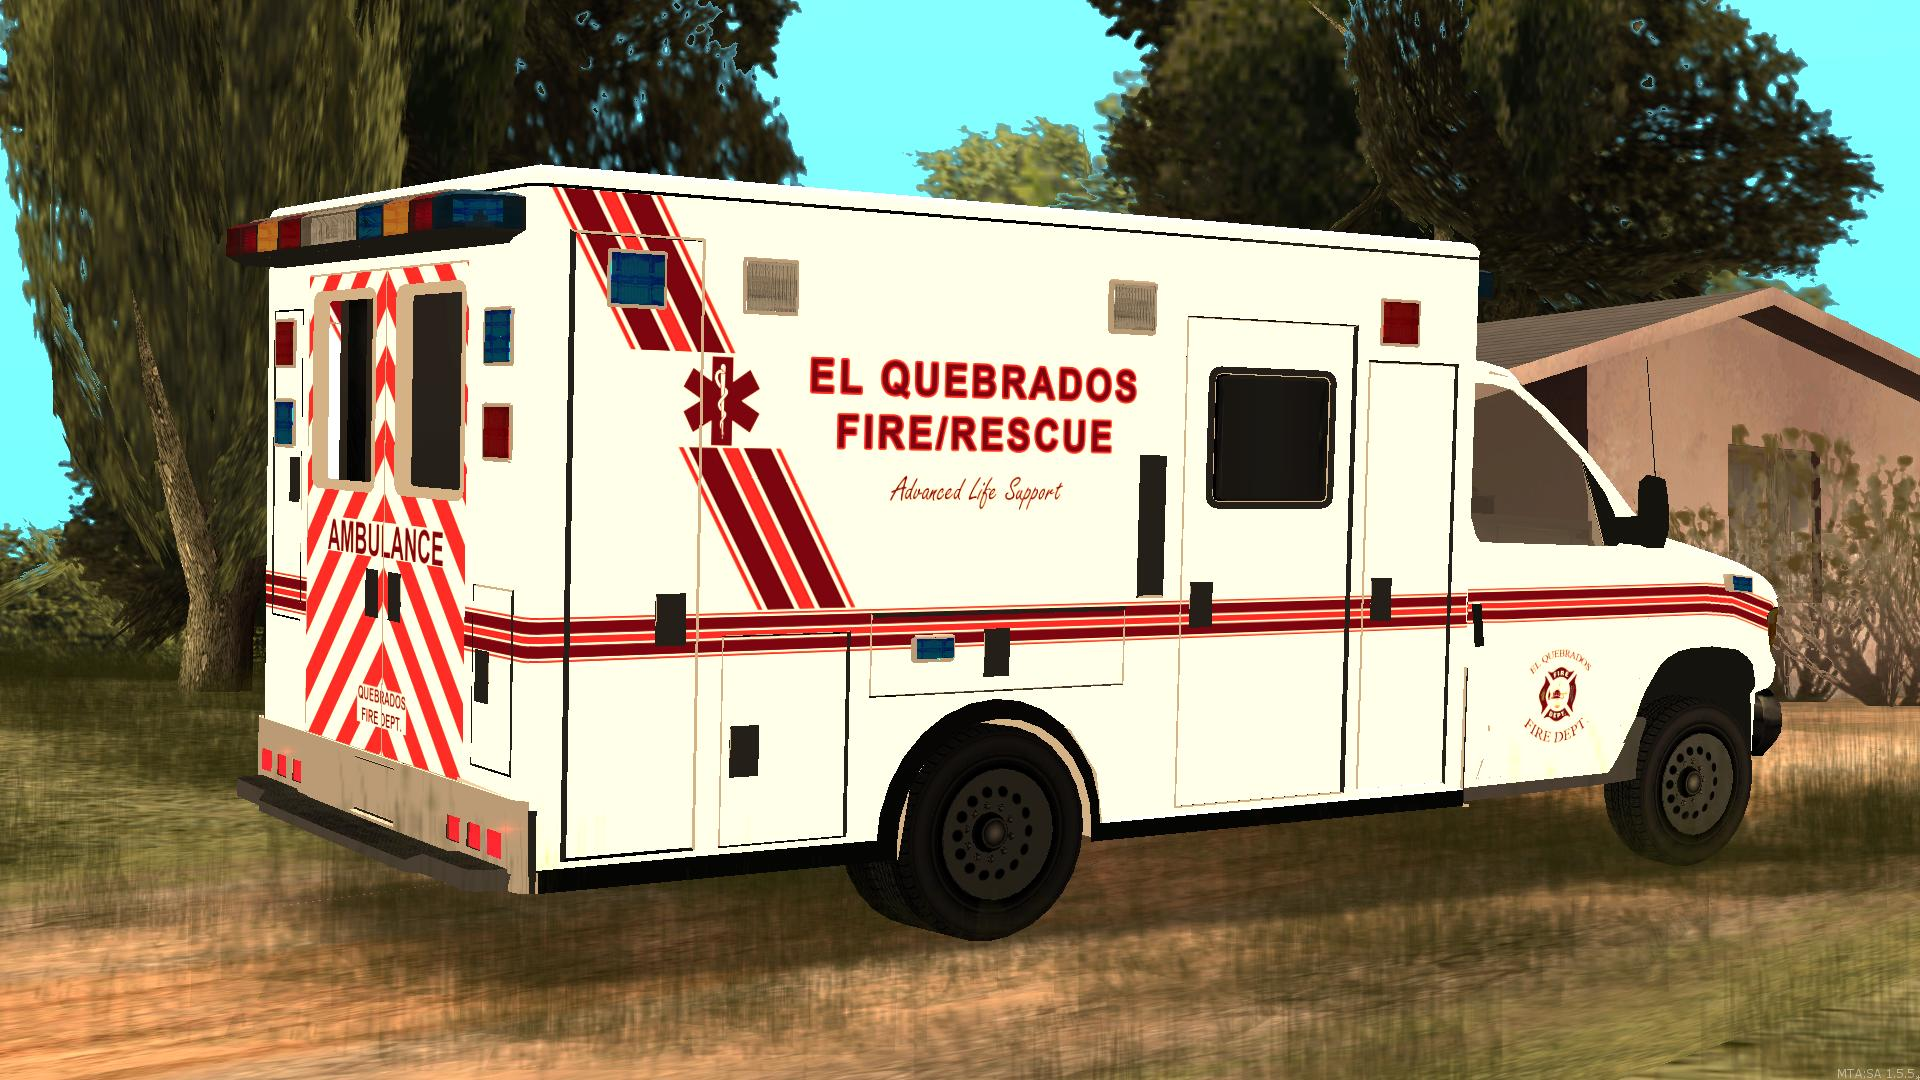 The El Quebrados Fire Department responds to a non-emergent medical call in rural El Quebrados. - posted by Thatoneiowan